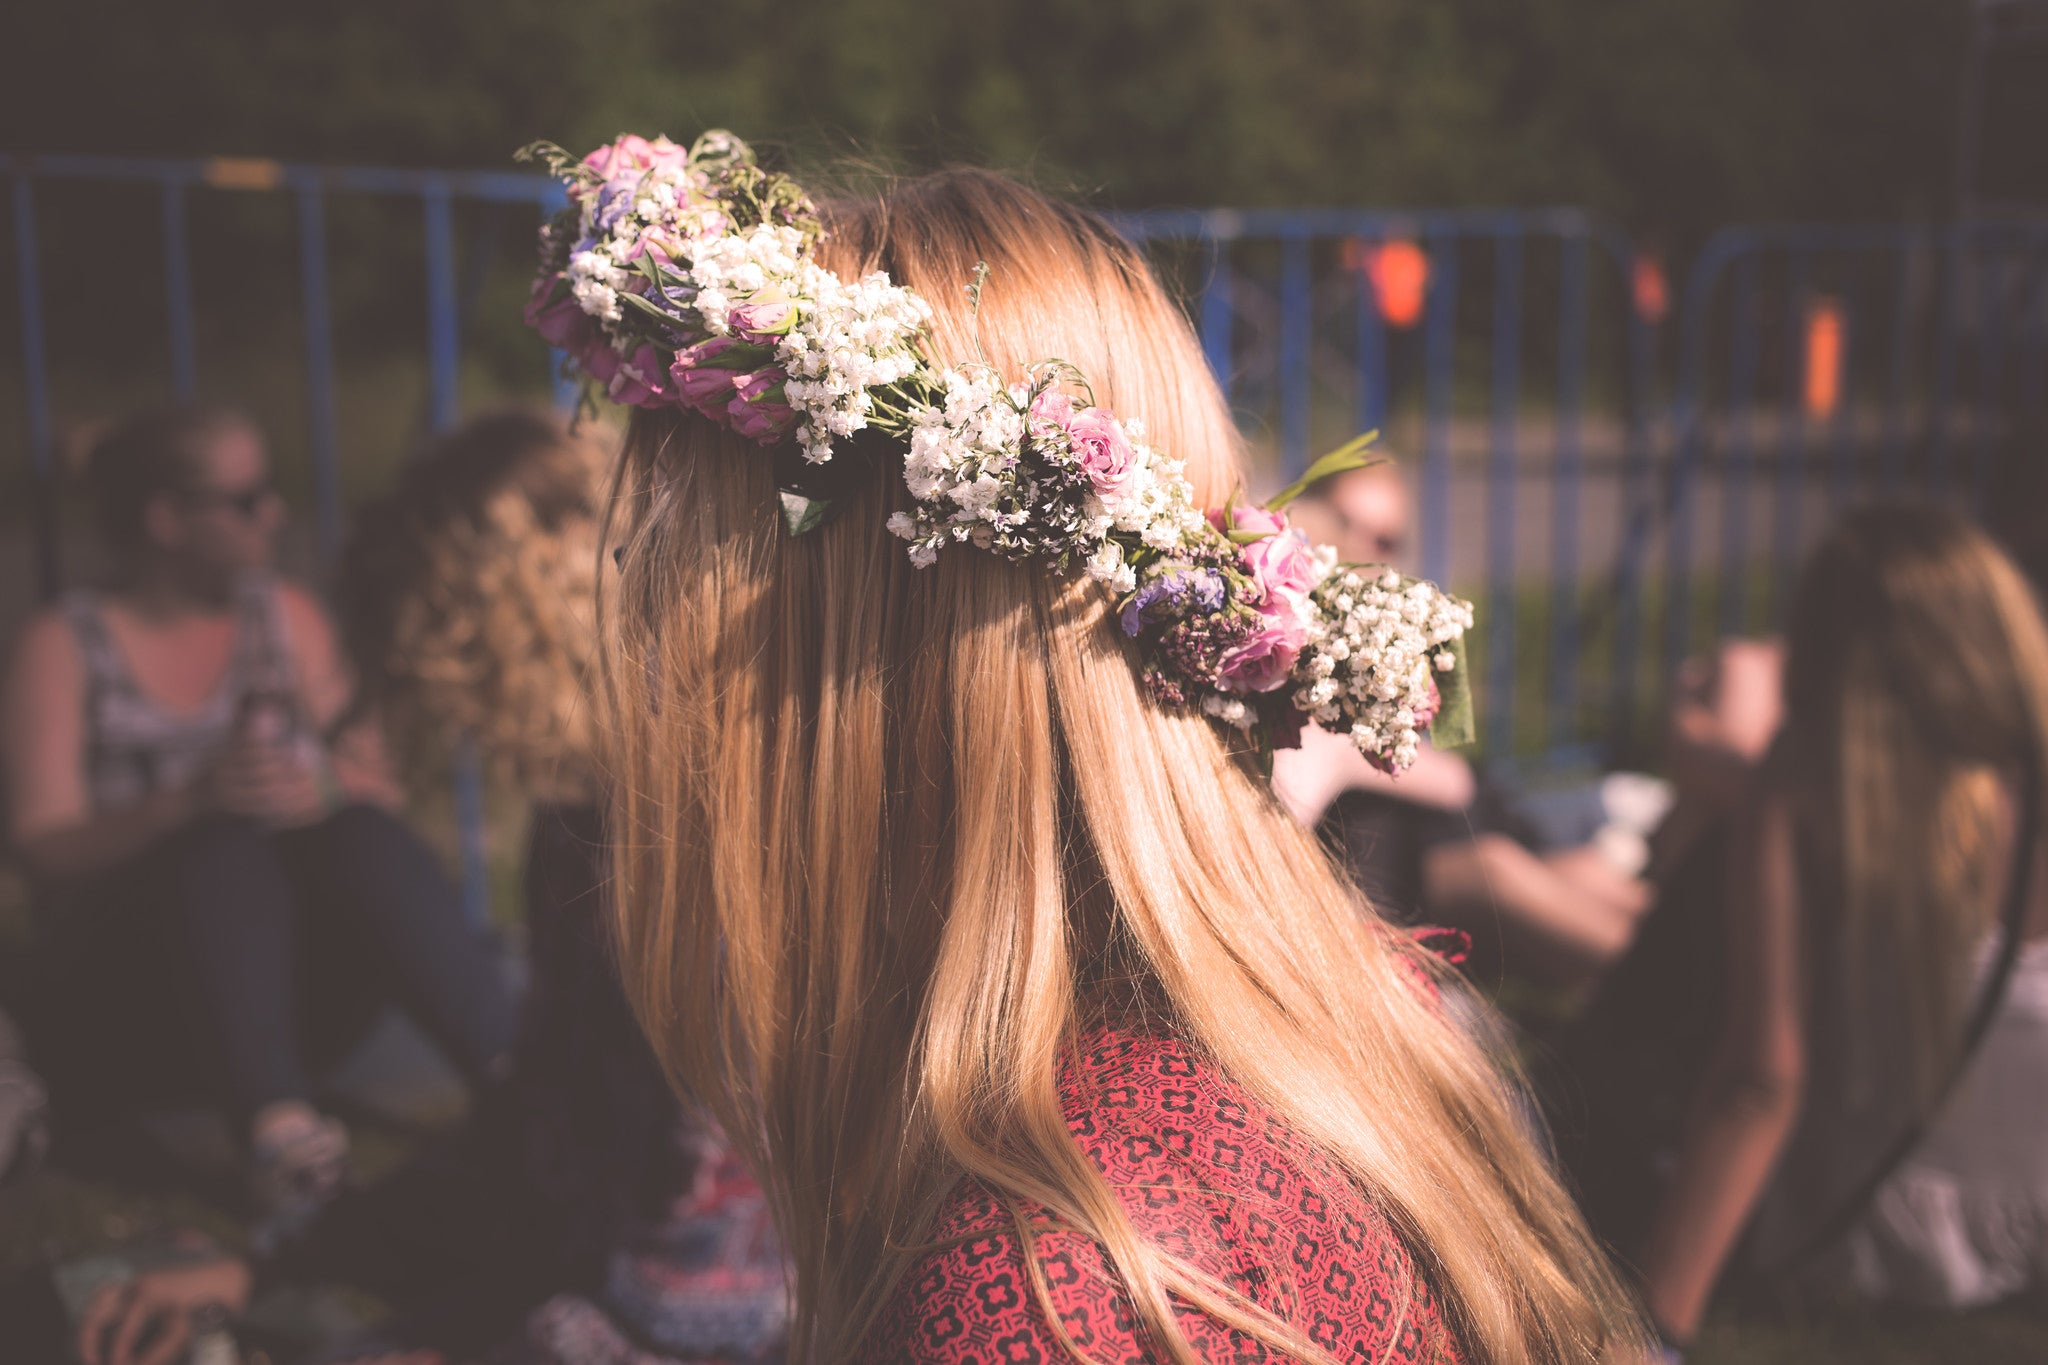 DIY Flower Crown Tips to Keep You from Going Over Budget